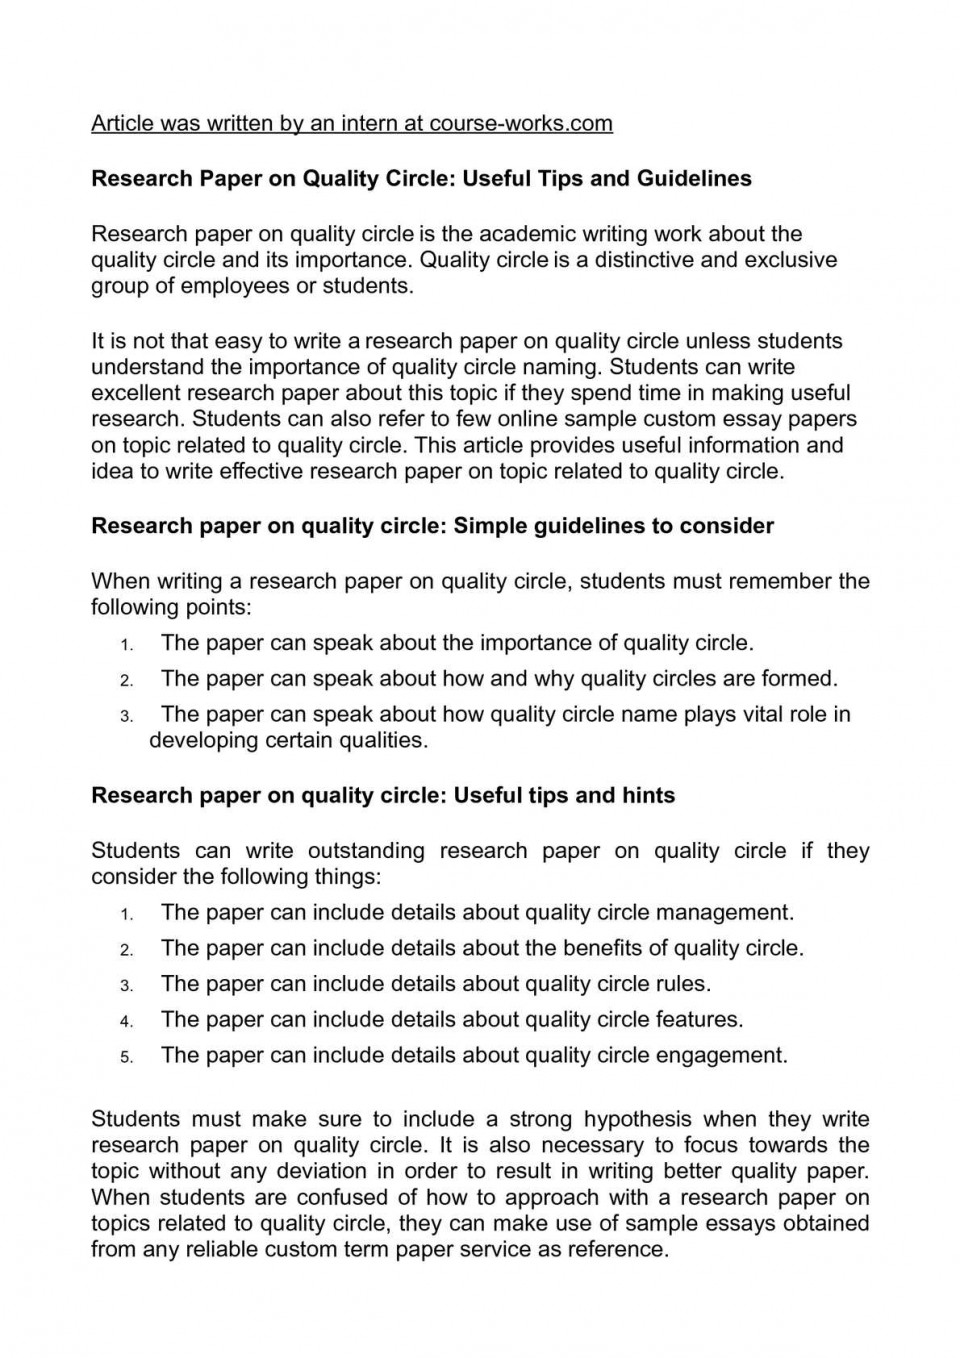 007 Research Paper Easy Topics Beautiful For High School Students American History About Business 960